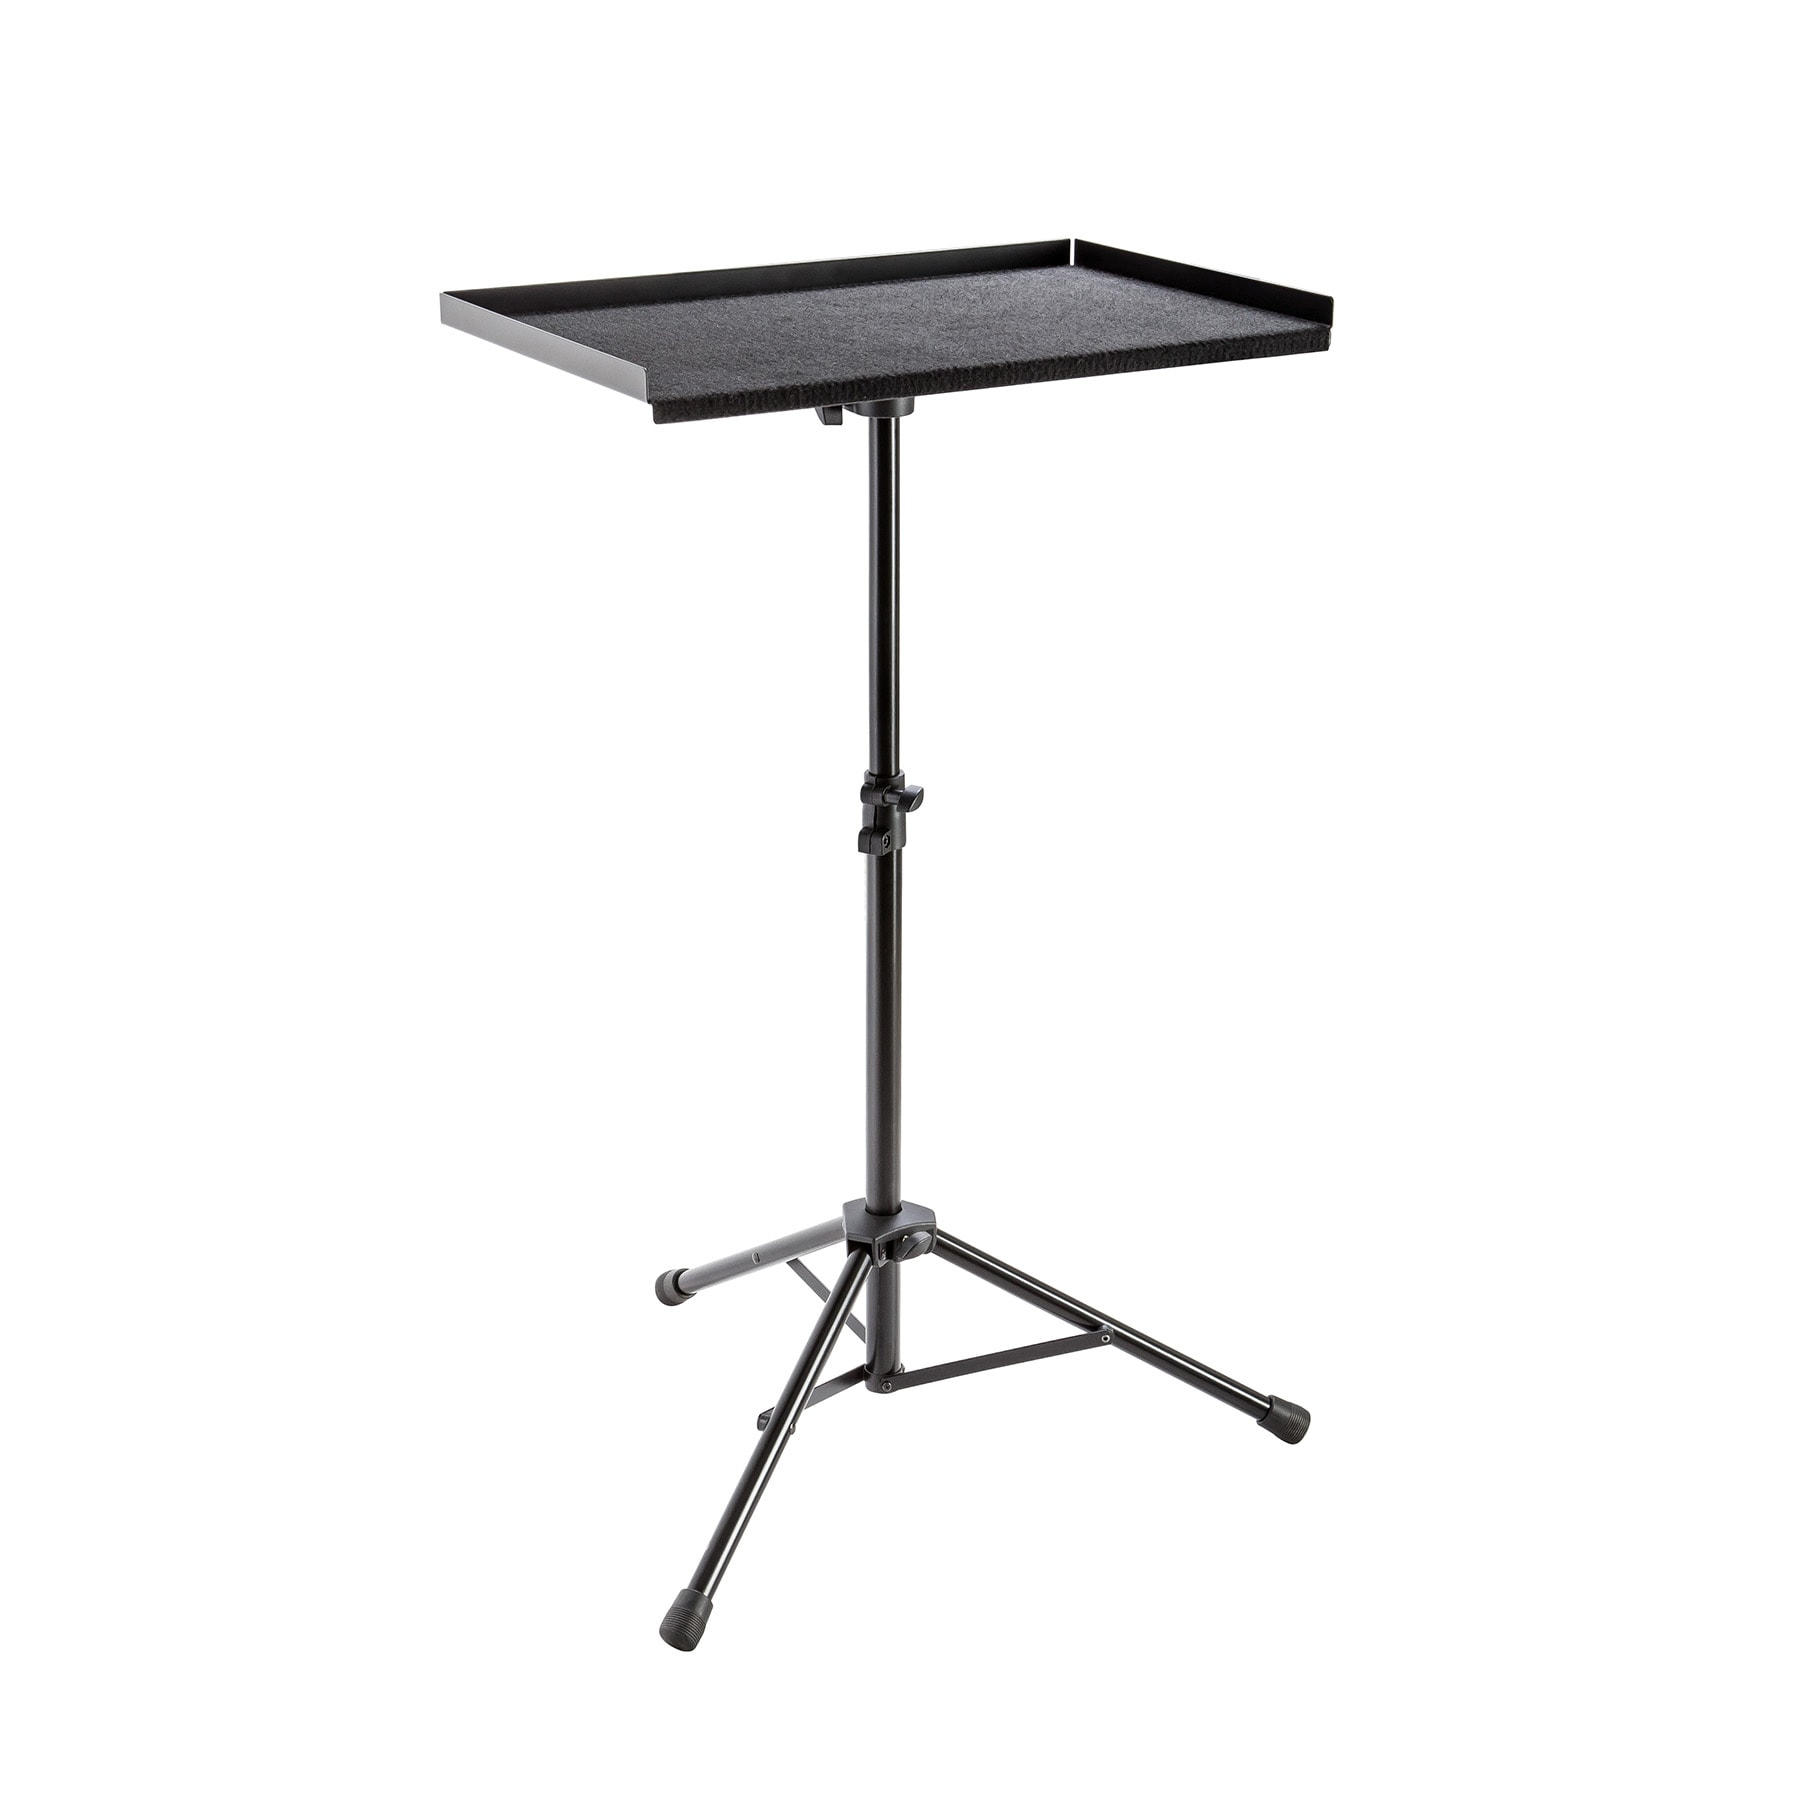 KM13500 - Percussion table